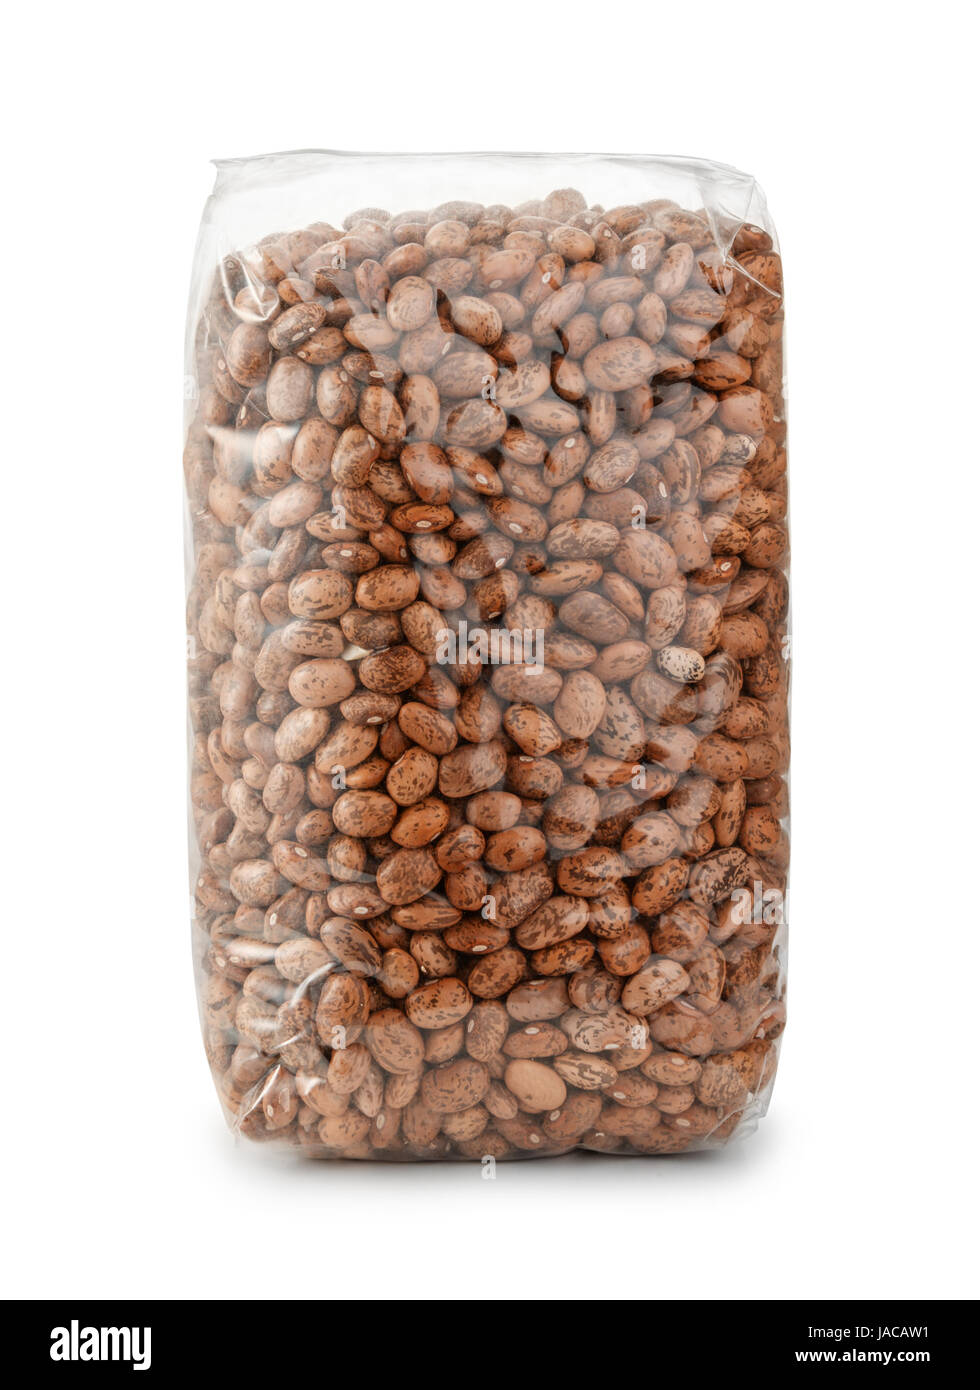 Packet of dry pinto beans isolated on white - Stock Image